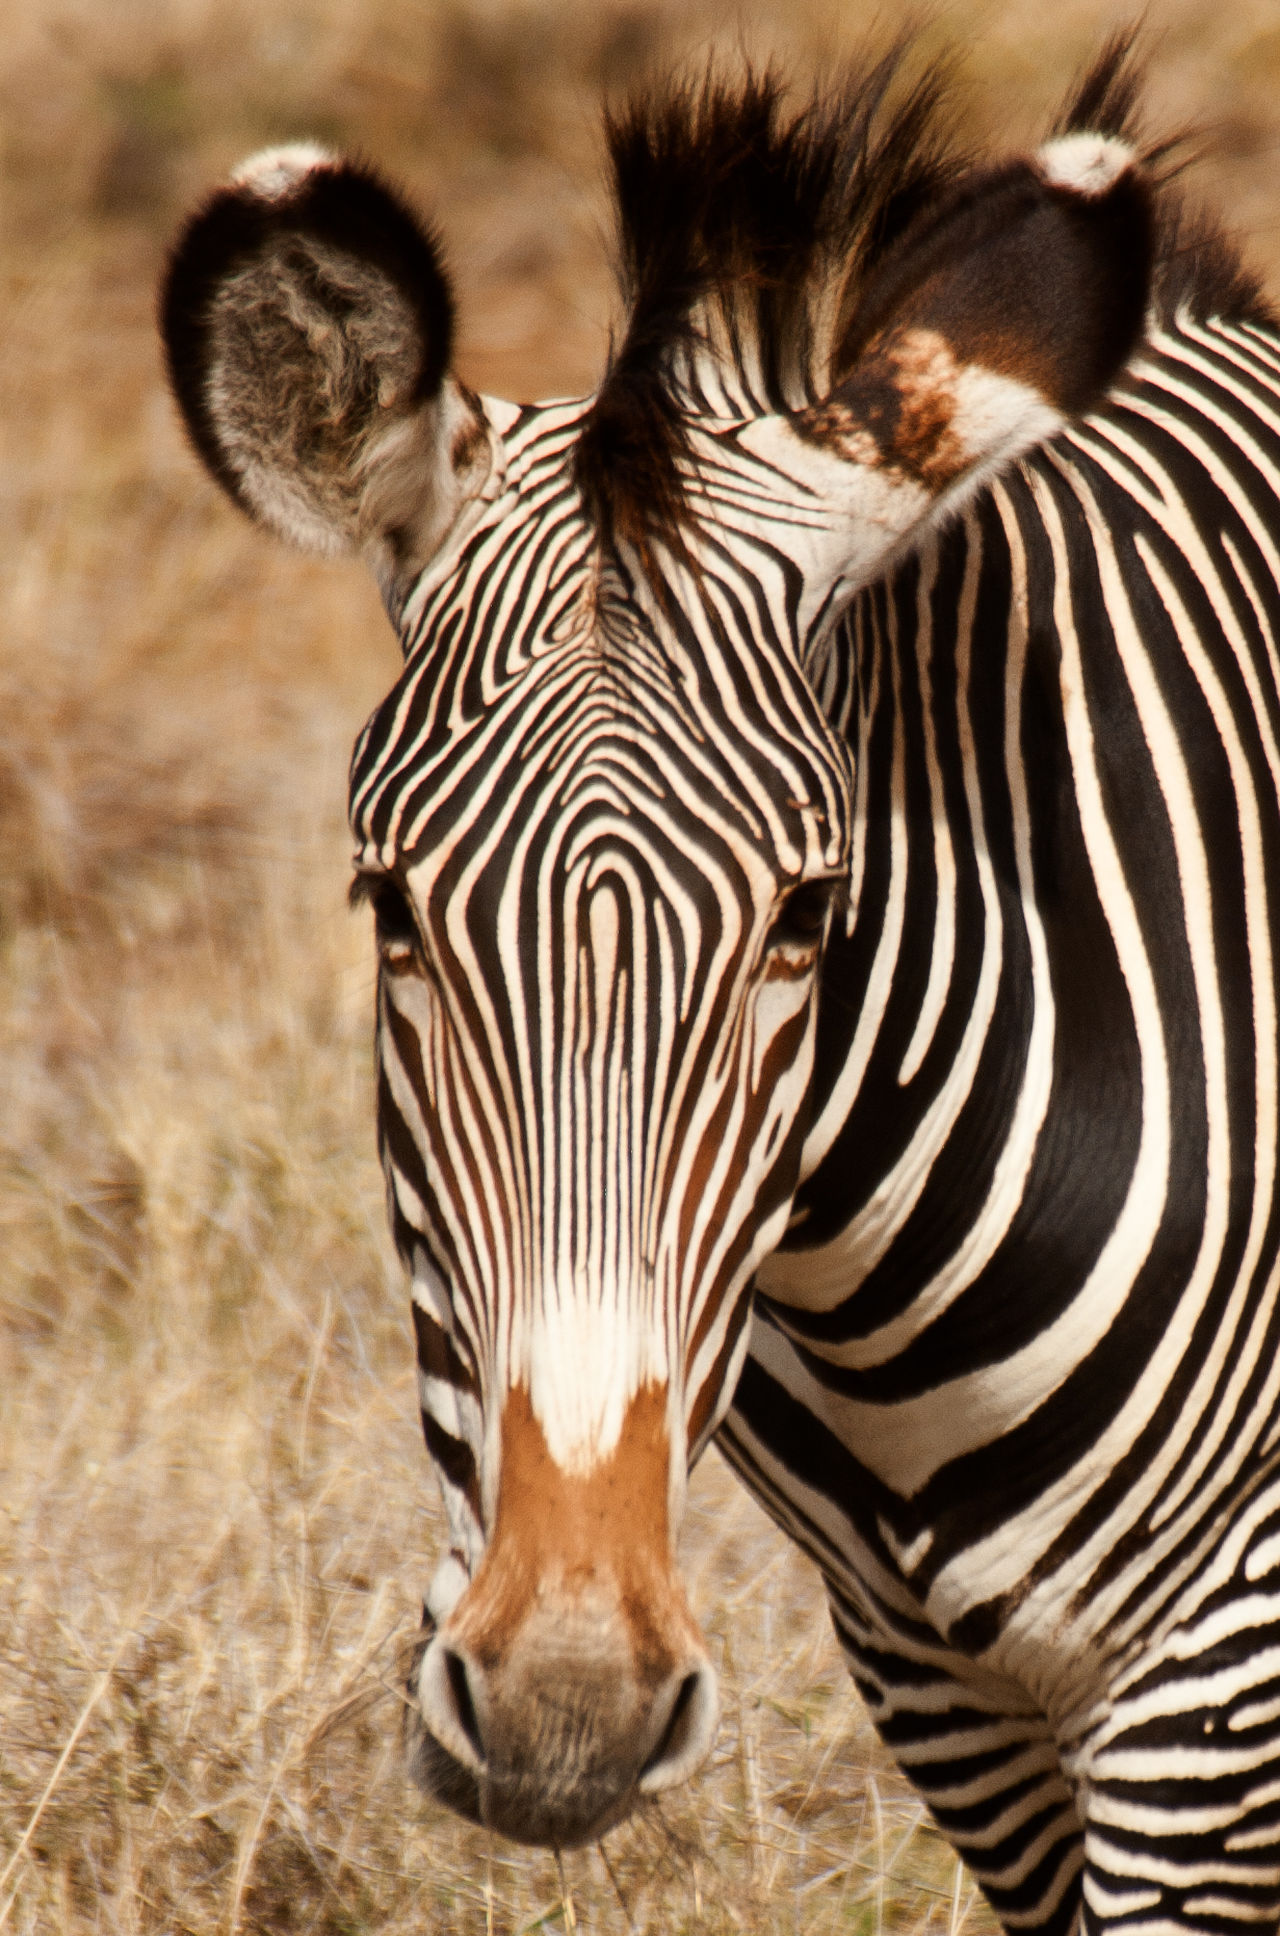 Africa Animal Themes Animal Wildlife Animals In The Wild Beauty In Nature Great Migration Mammal Nature No People One Animal Outdoors Safari Animals Serengeti National Park Tanzania Zebra